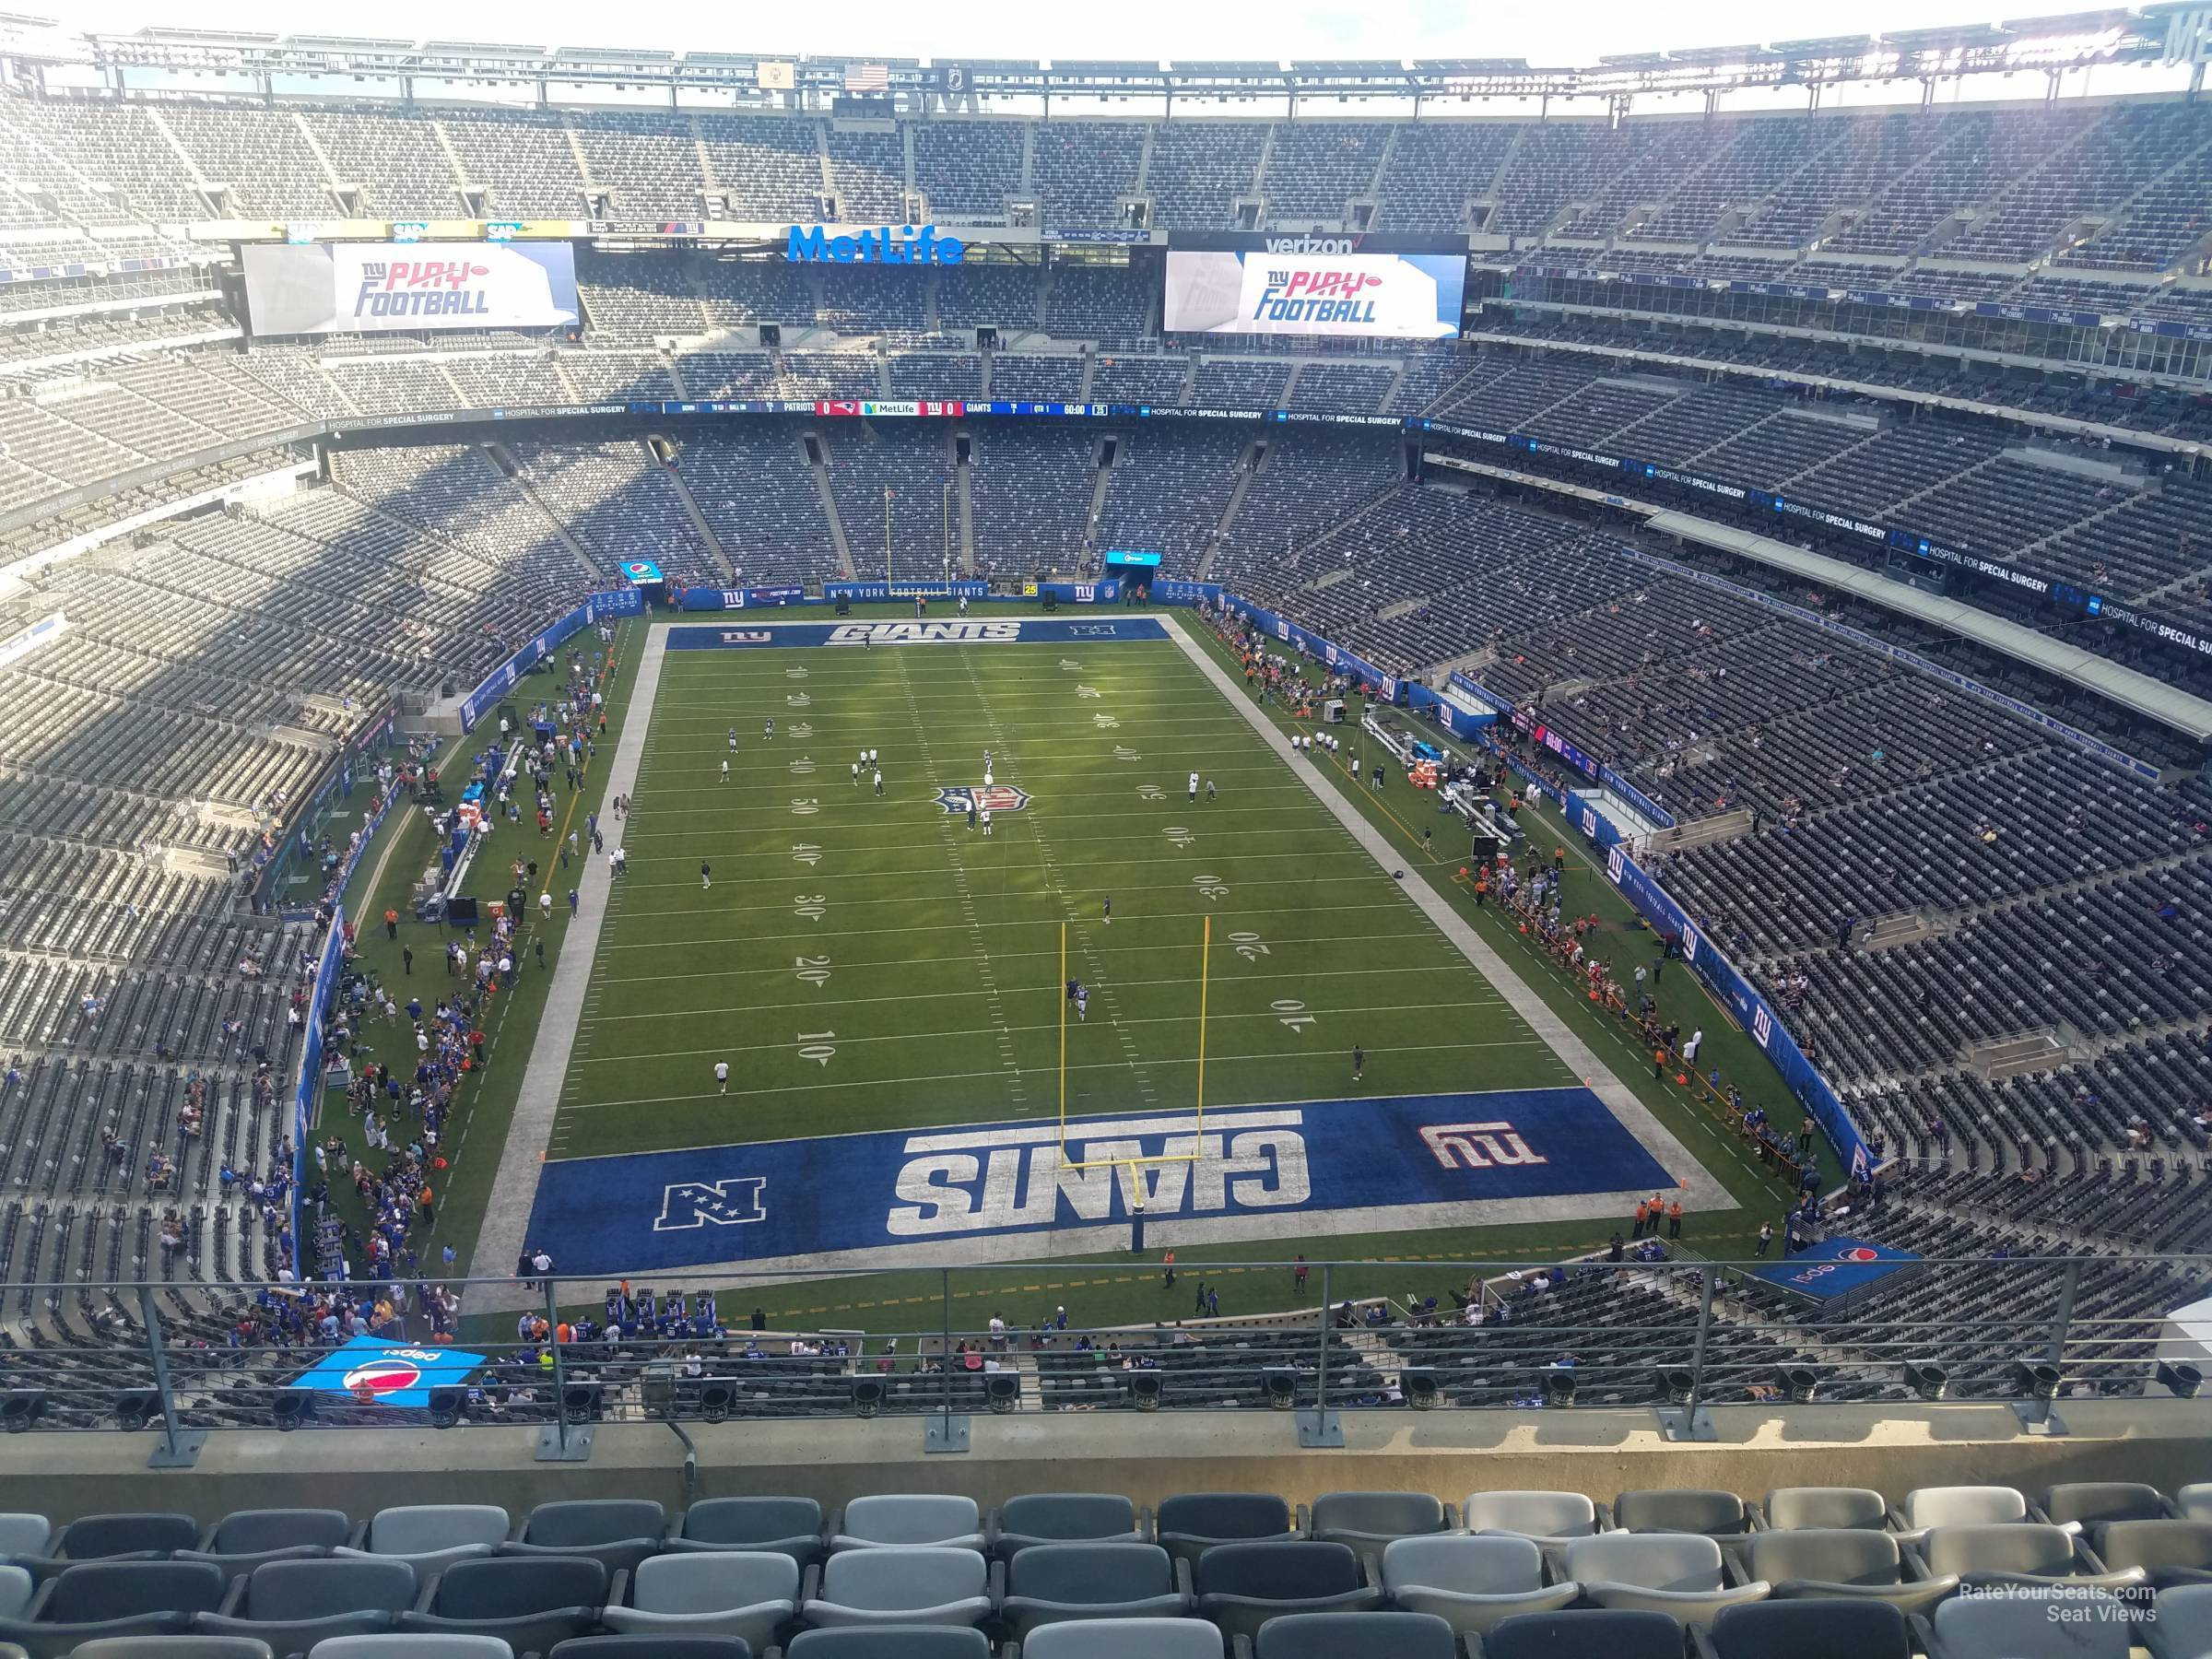 0b4c53a9f MetLife Stadium Section 302 - Giants Jets - RateYourSeats.com